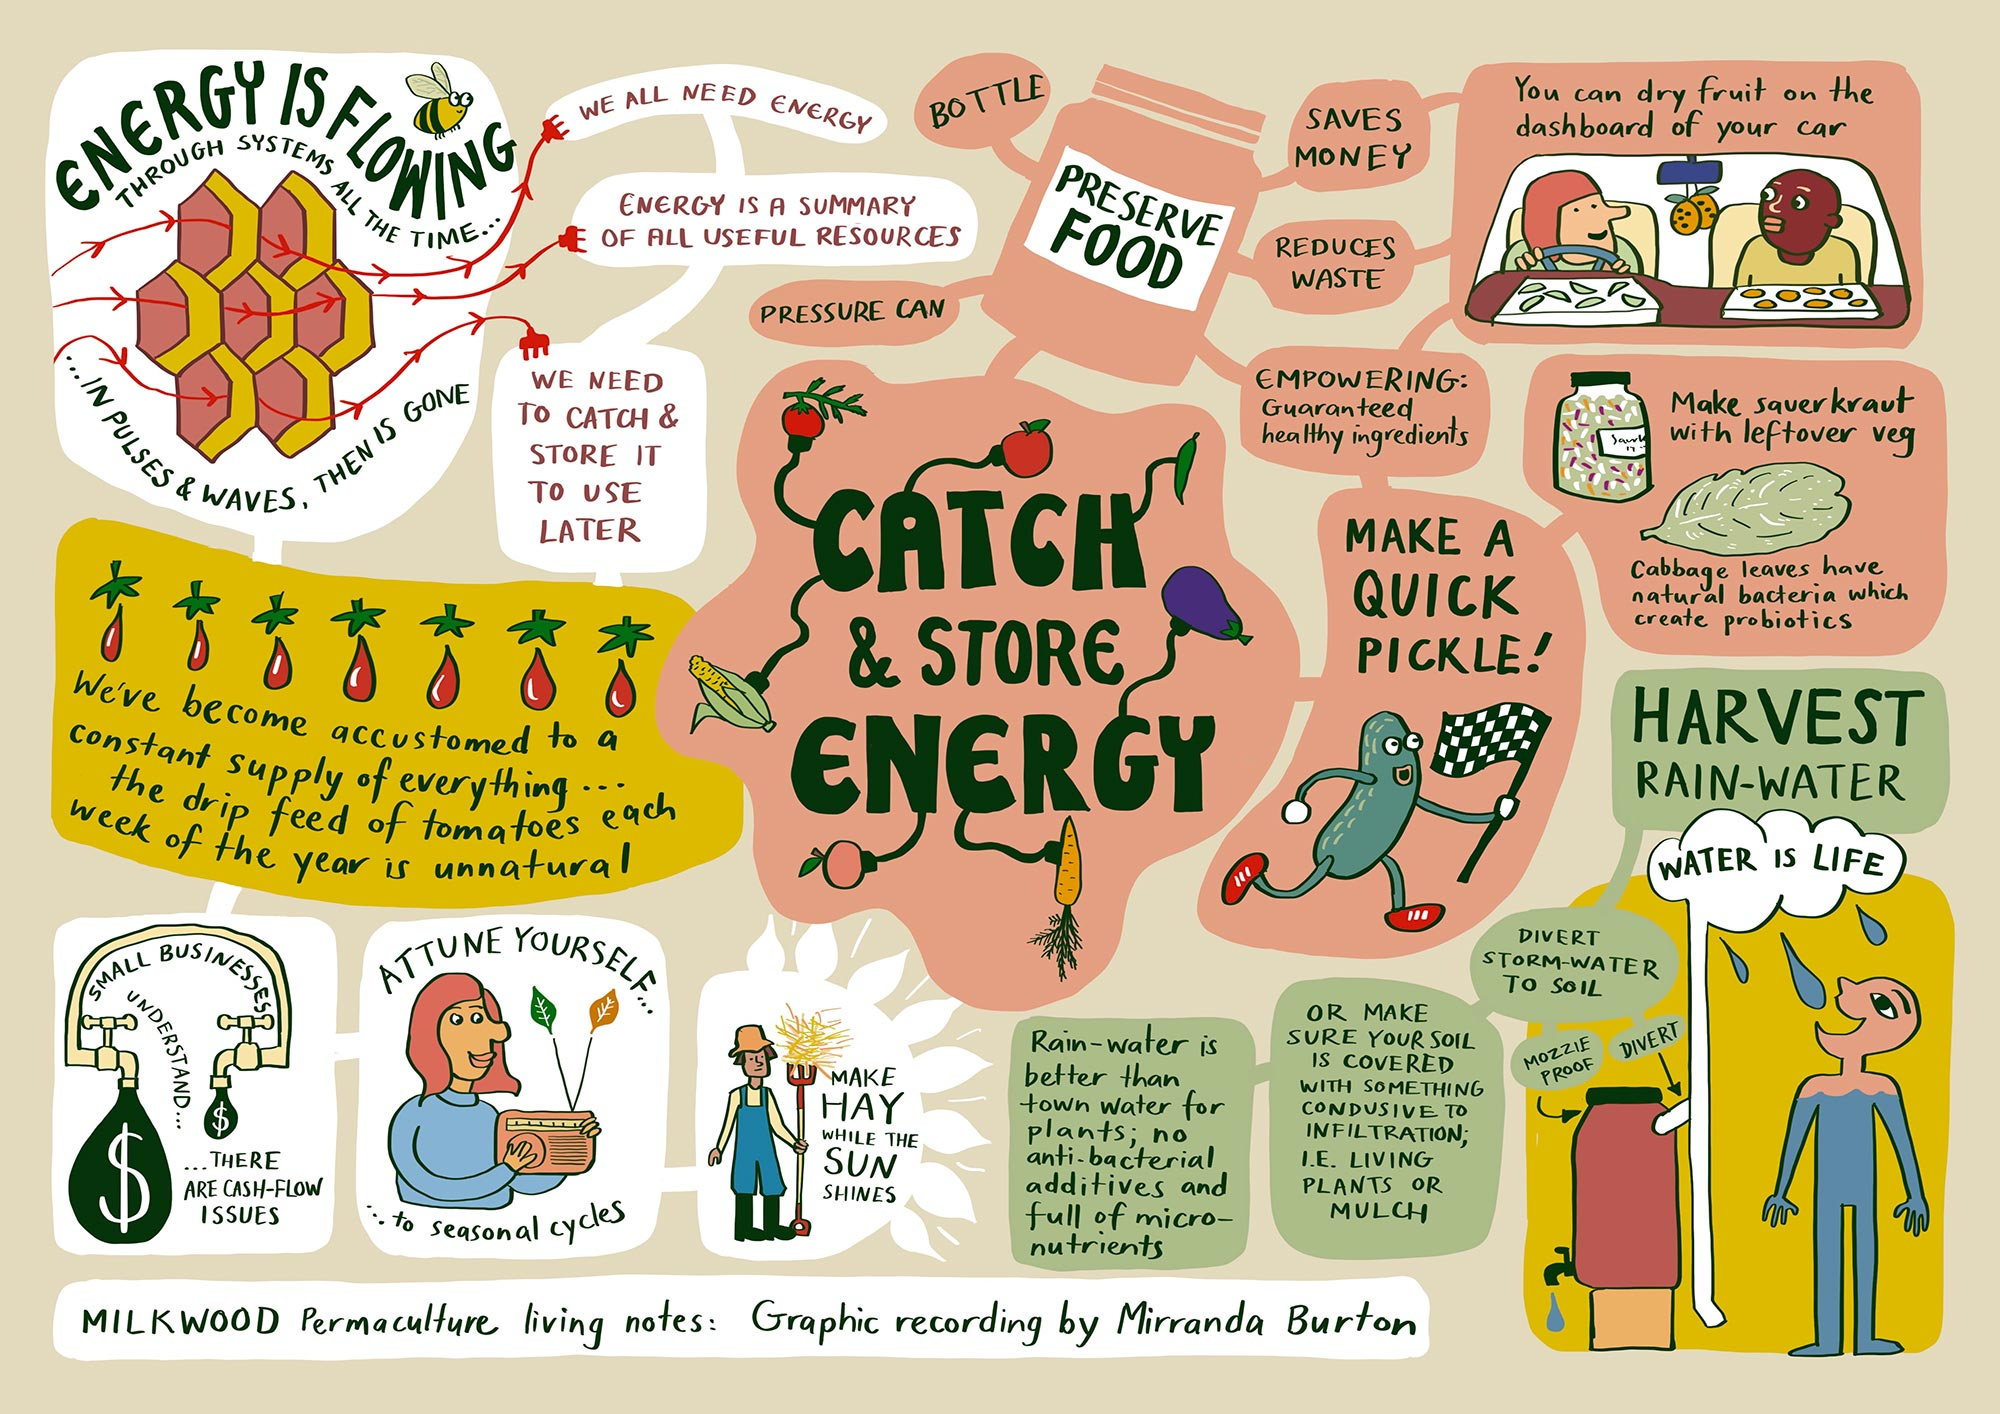 Permaculture principle #2 - Catch and Store Energy